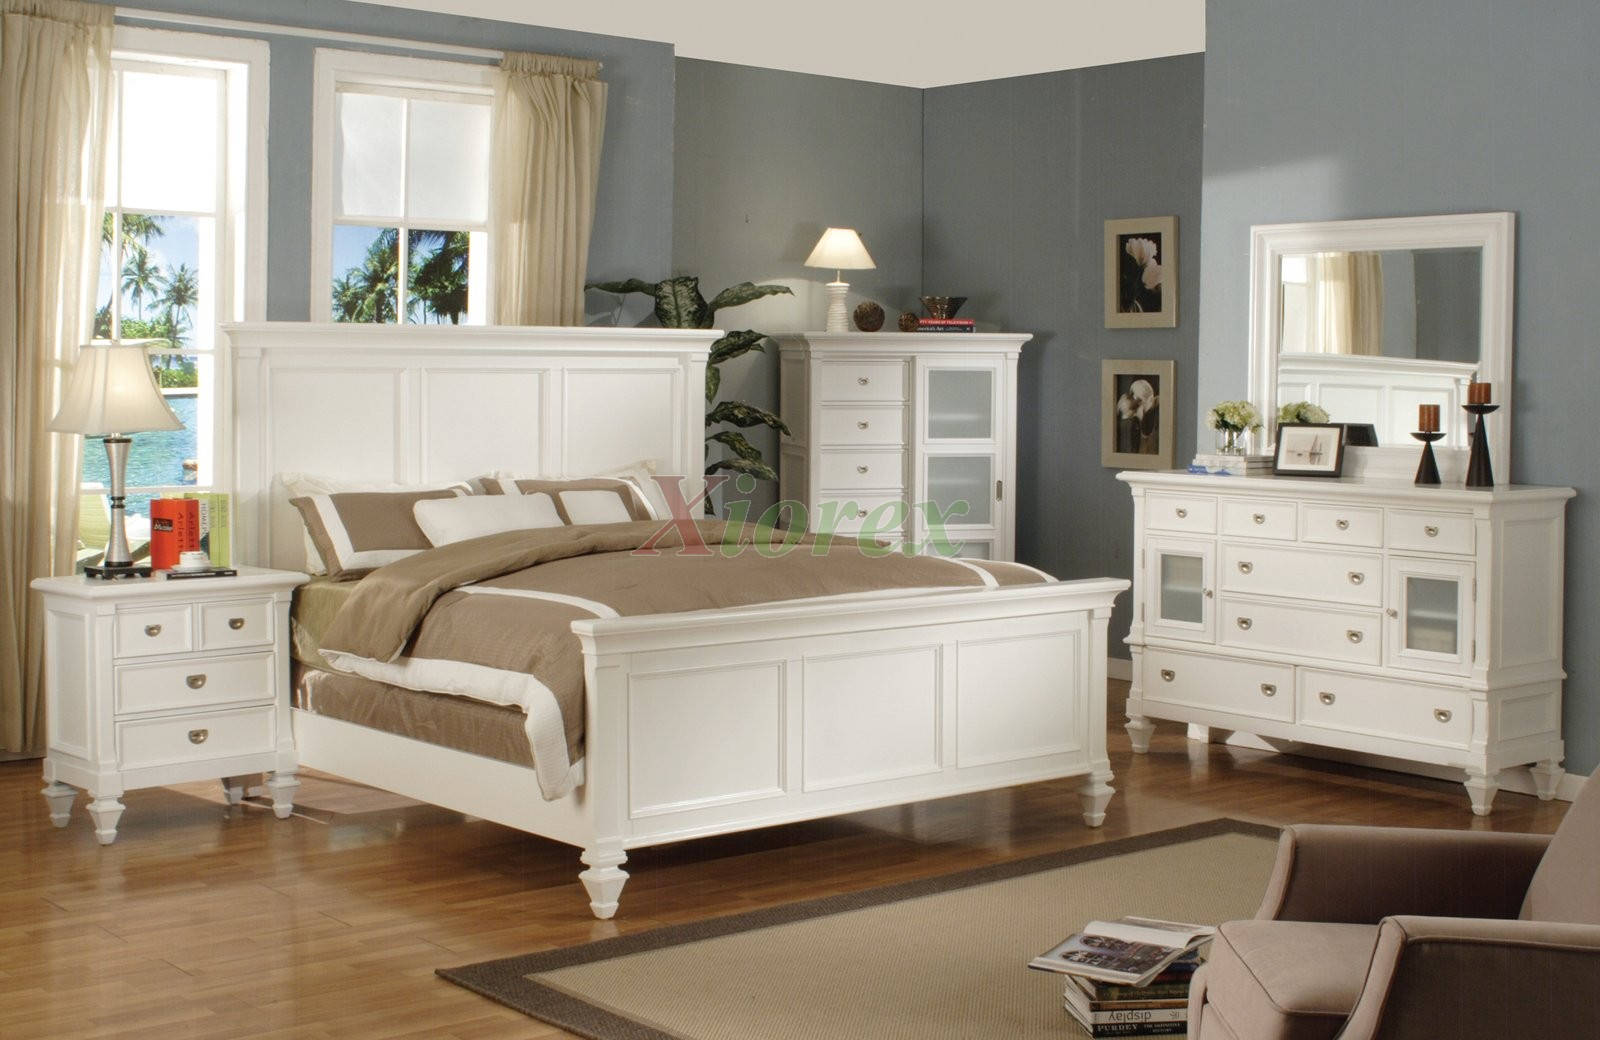 Bed And Furniture Sets House Construction Planset of dining room